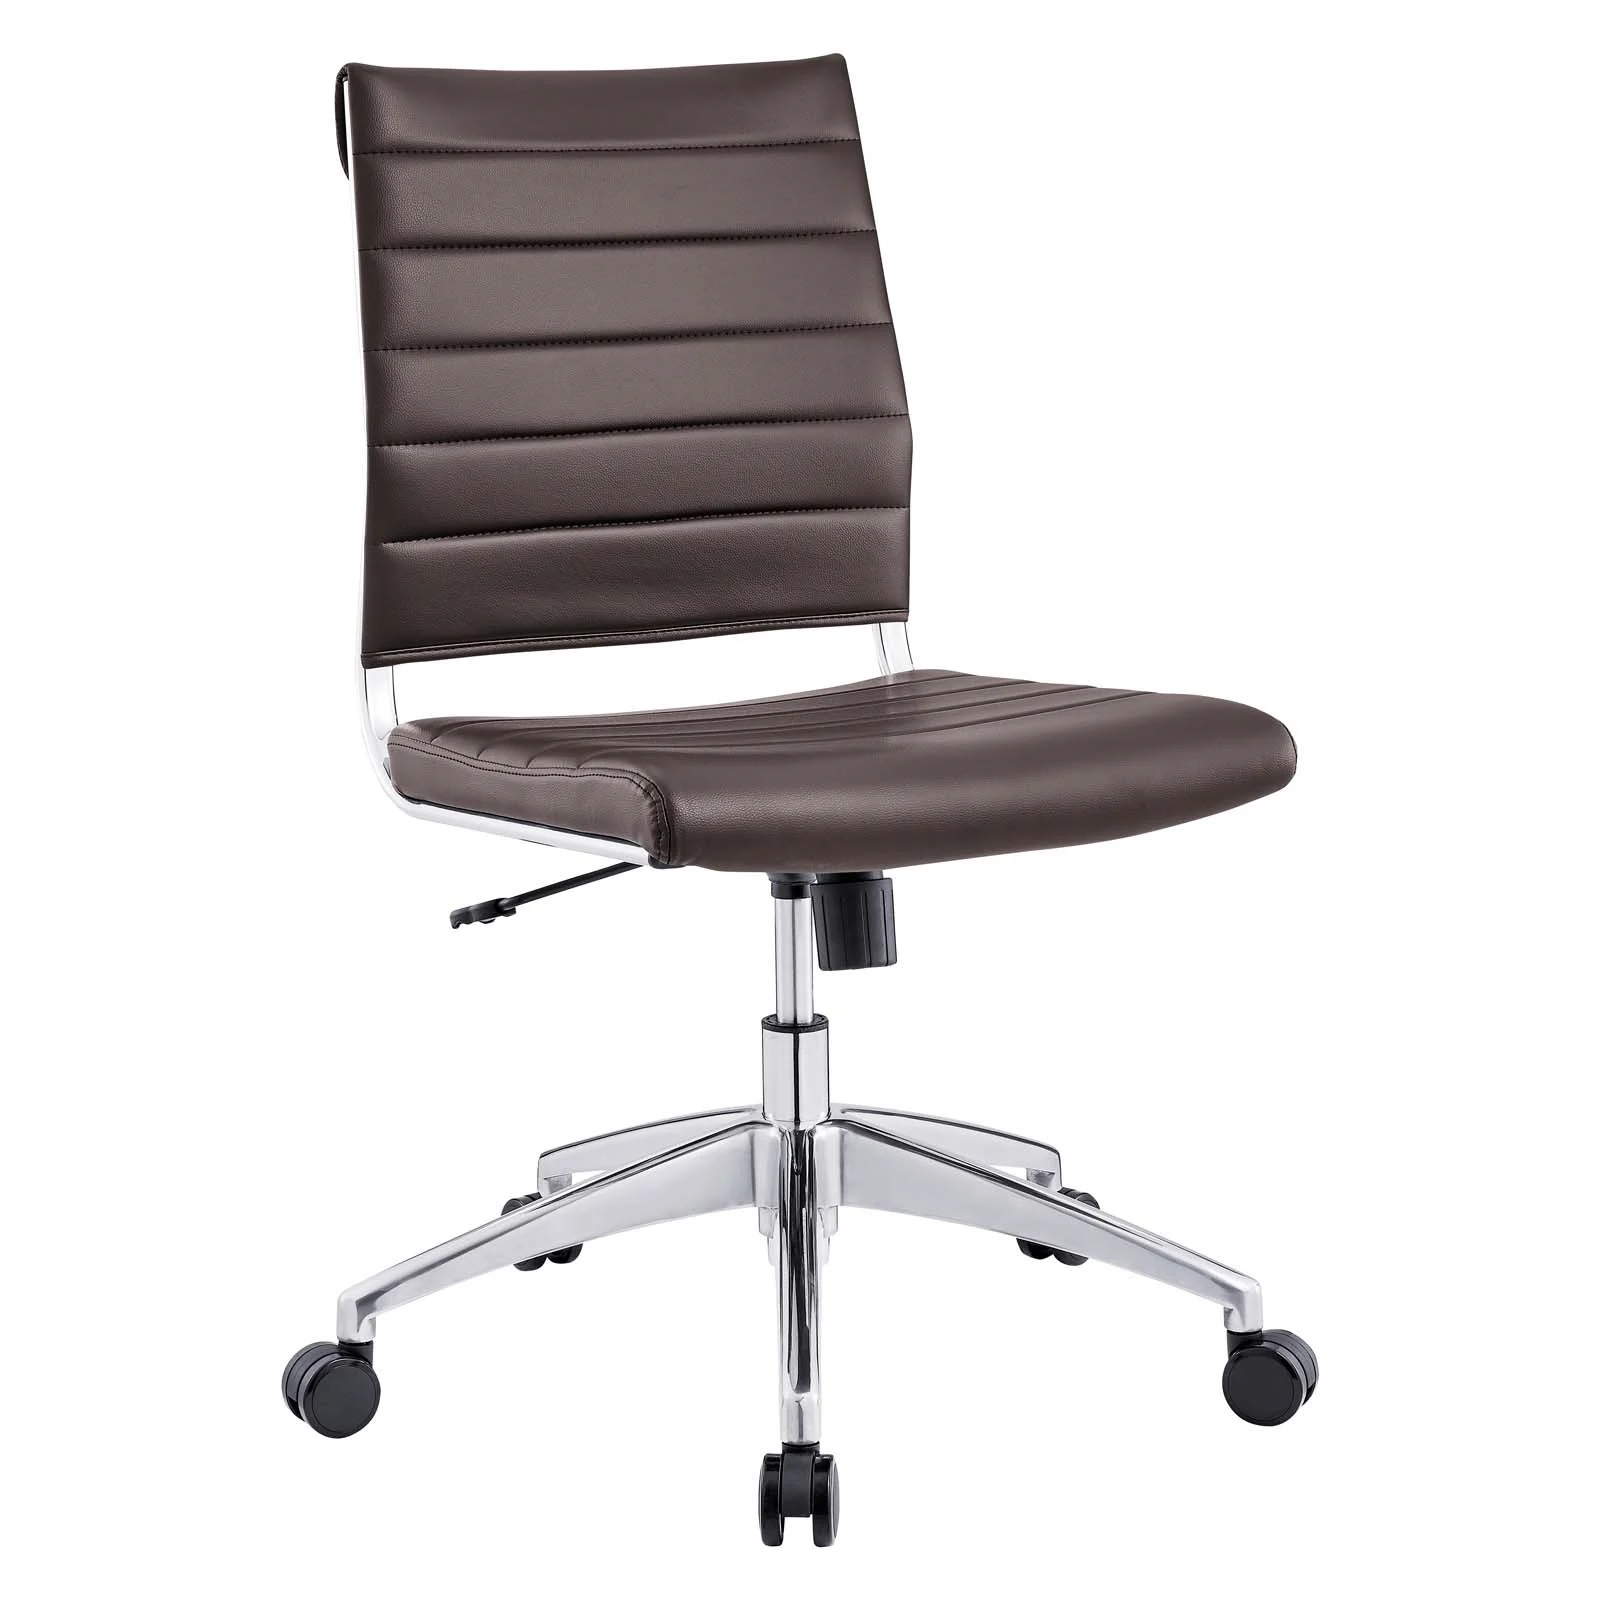 Armless-Mid-Back-Office-Chair-in-Brown